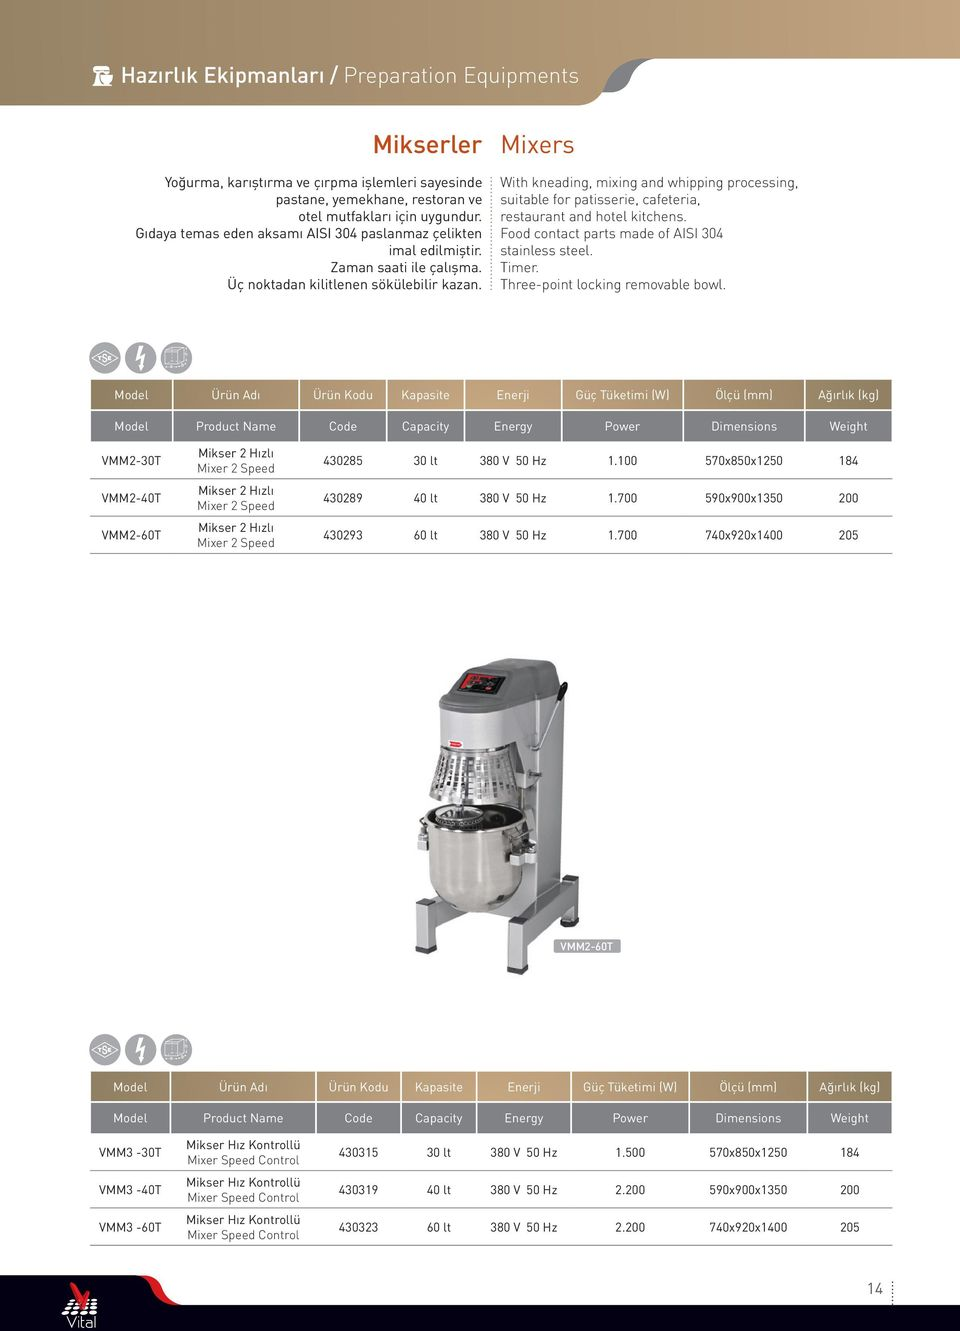 Mixers With kneading, mixing and whipping processing, suitable for patisserie, cafeteria, restaurant and hotel kitchens. Food contact parts made of AISI 304 stainless steel. Timer.